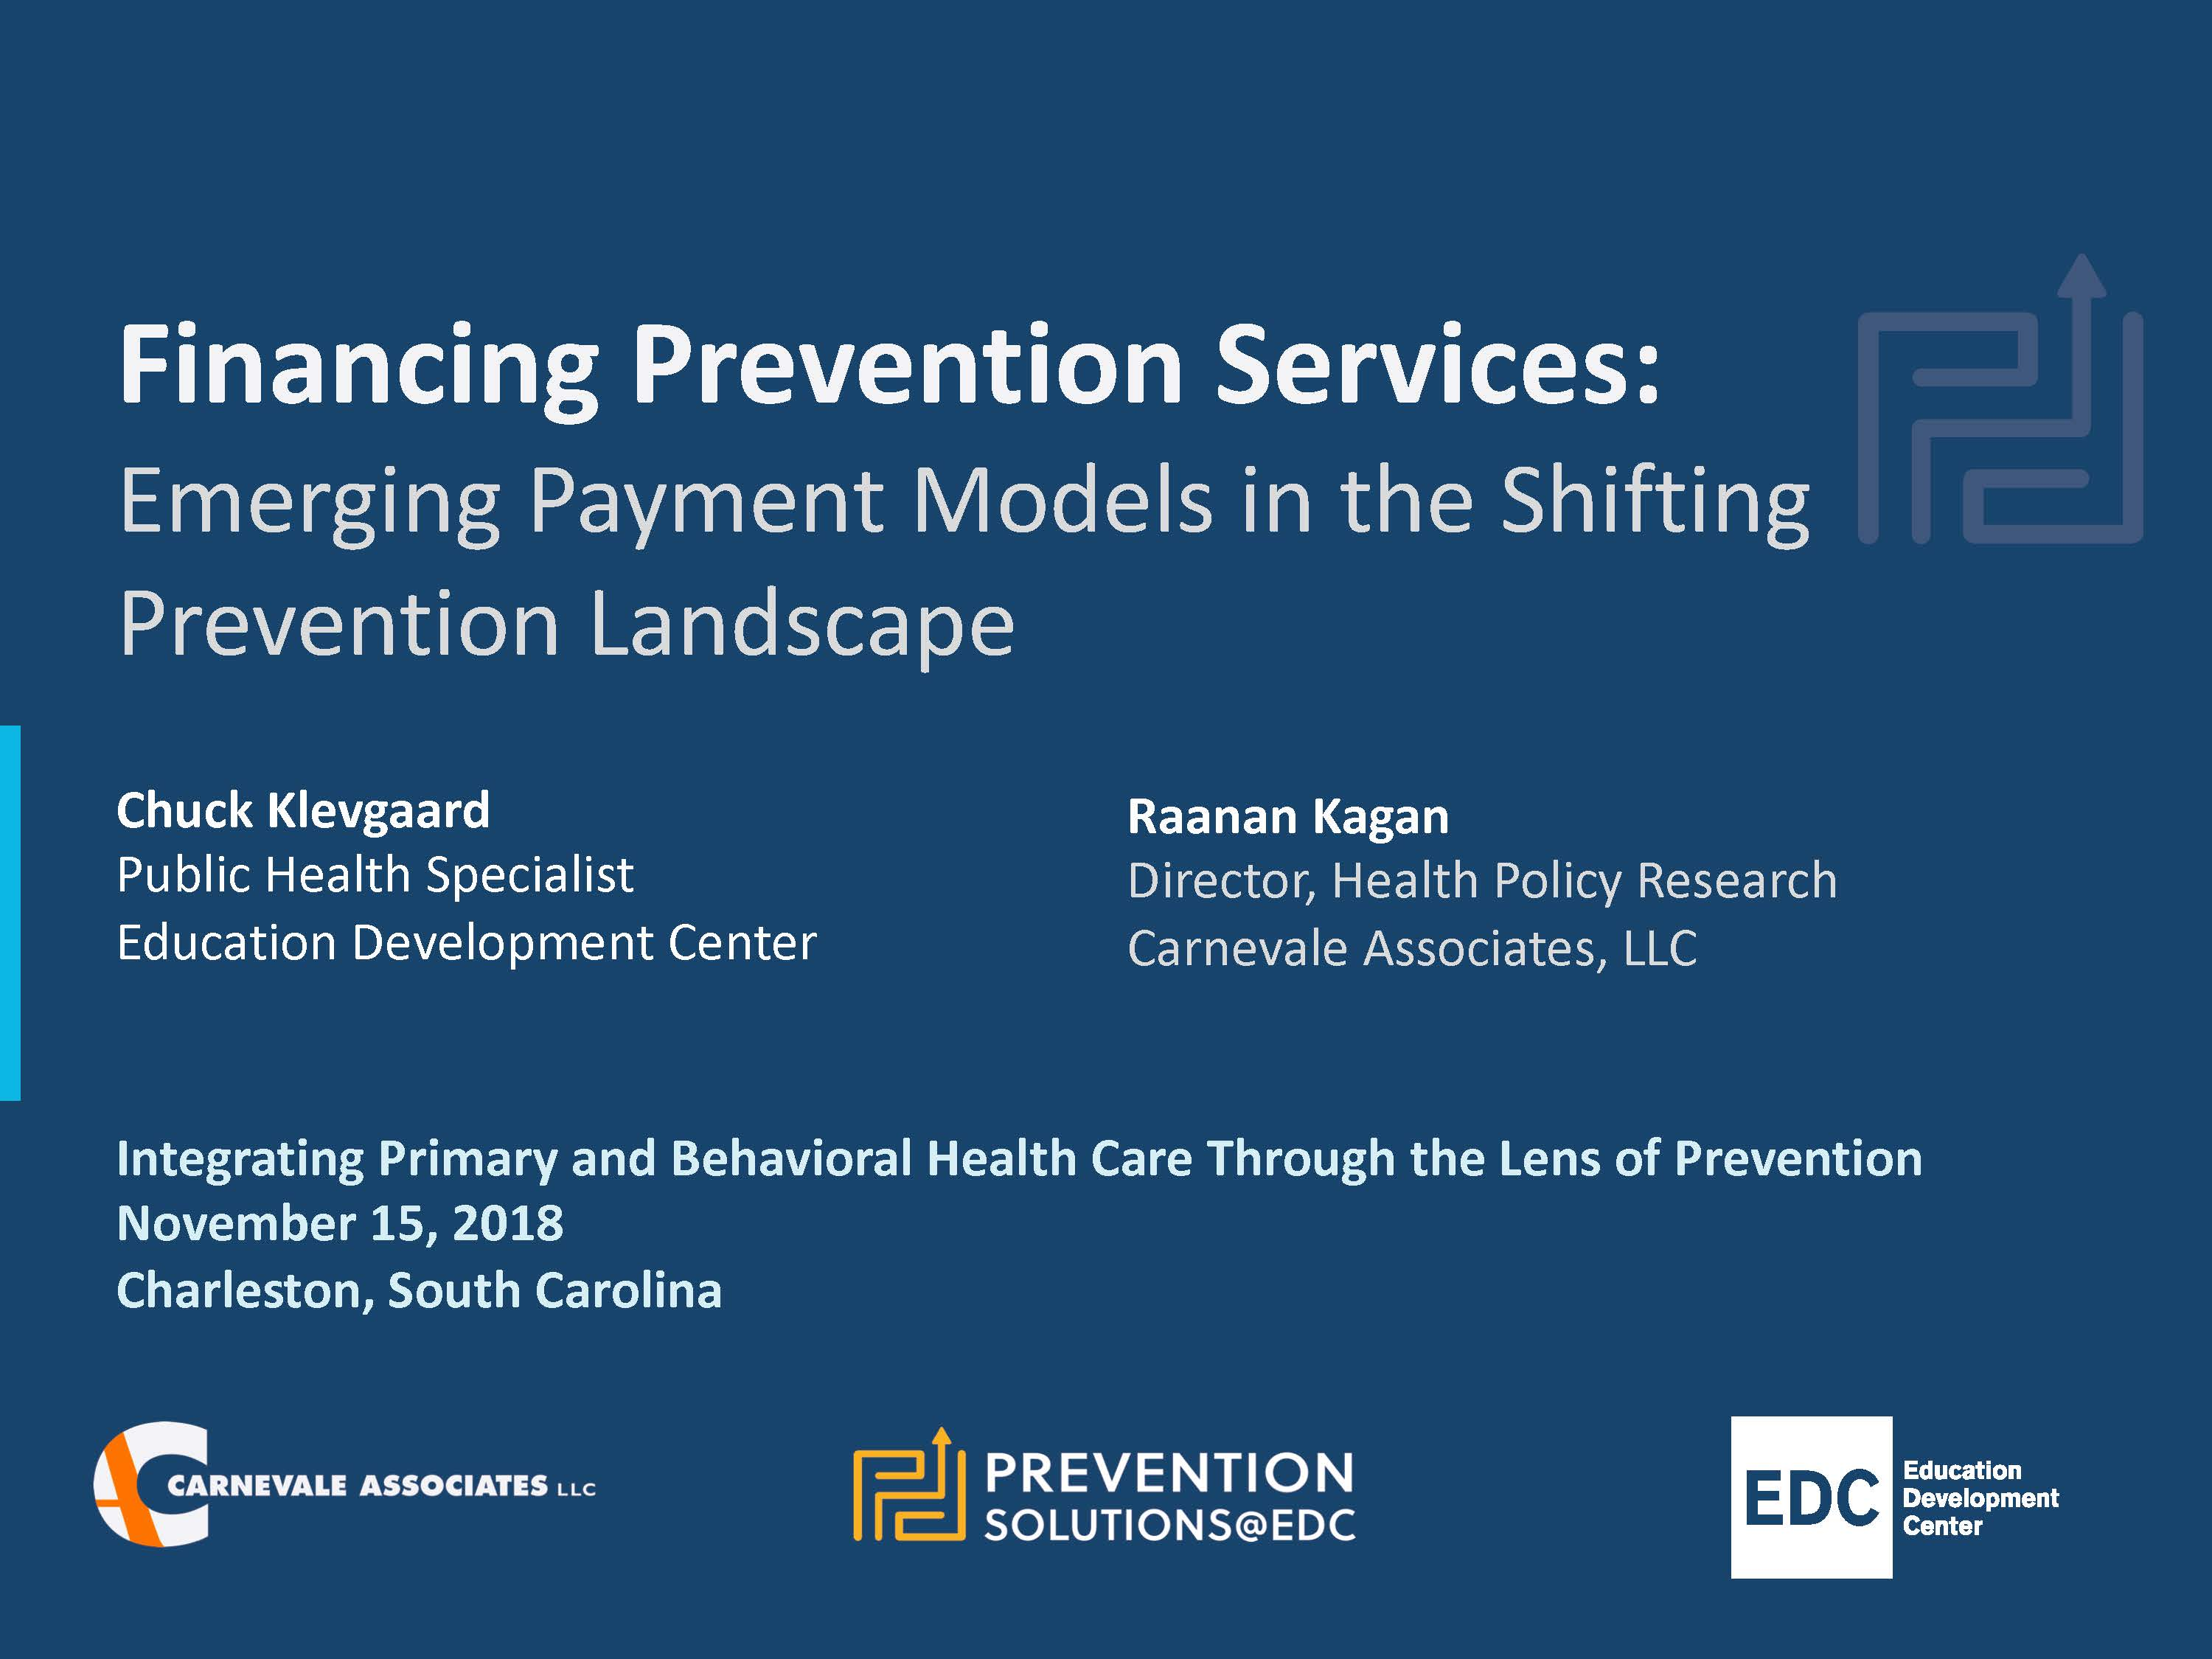 Emerging Payment Models in the Shifting Prevention Landscape